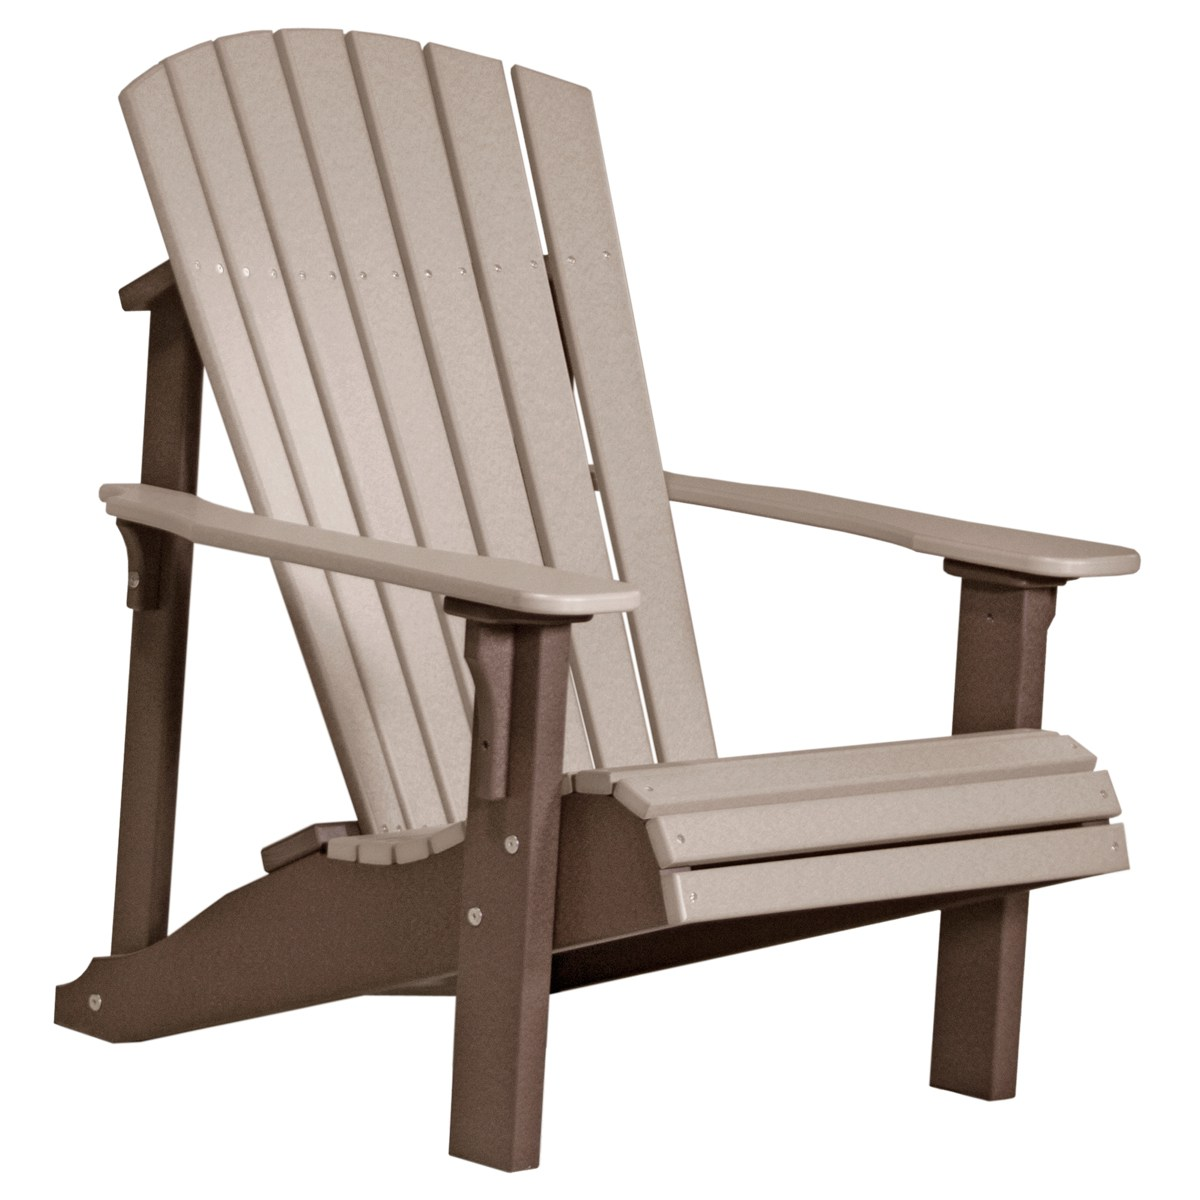 non wood adirondack chairs little boy deluxe chair recycled patio fine oak things